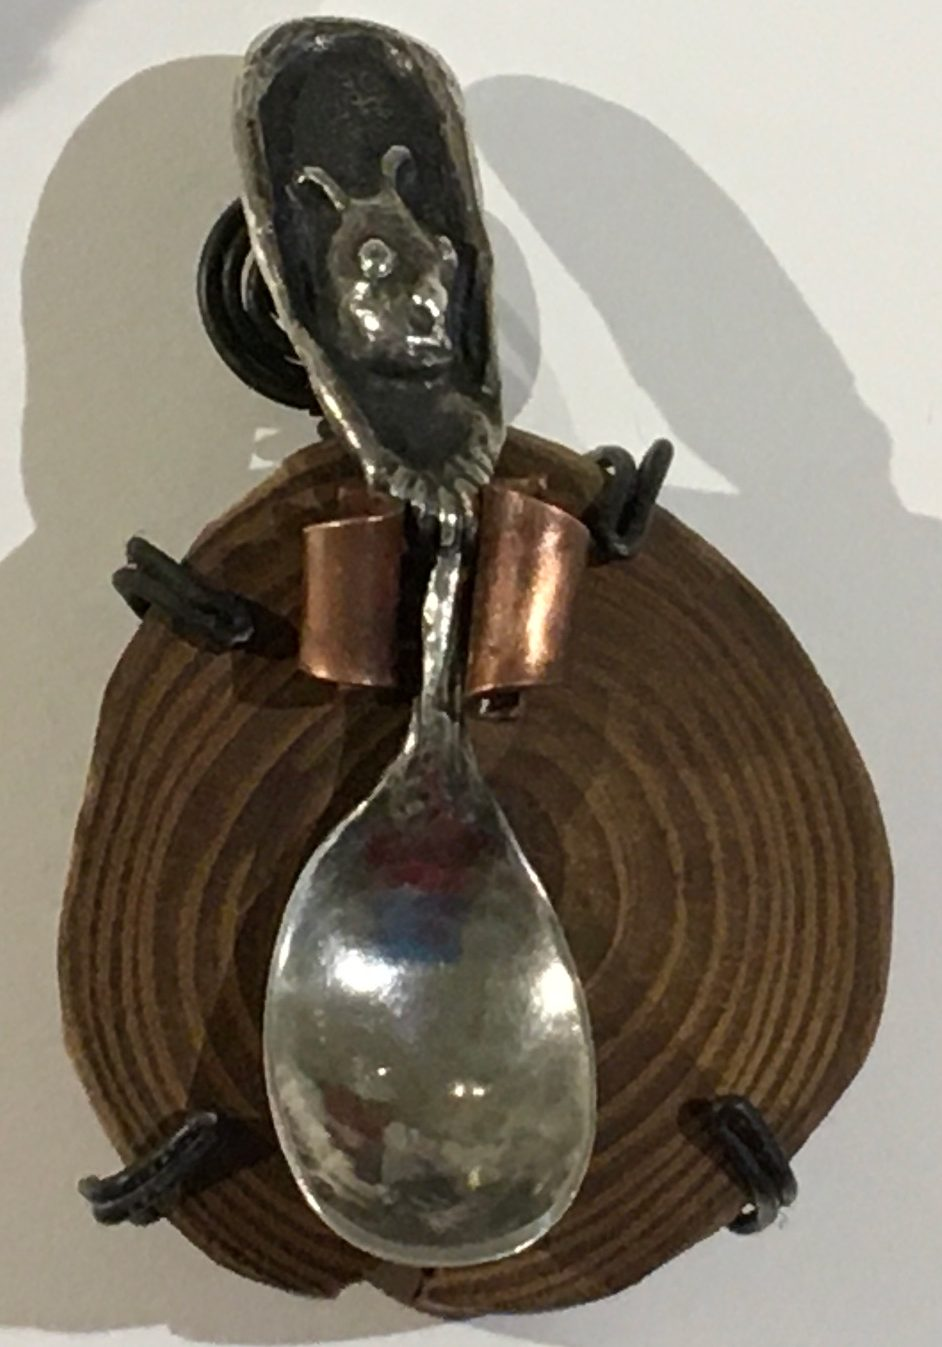 Linda Kelen, Other Twin, 2018, sterling silver, 4 inches, collection of the artist